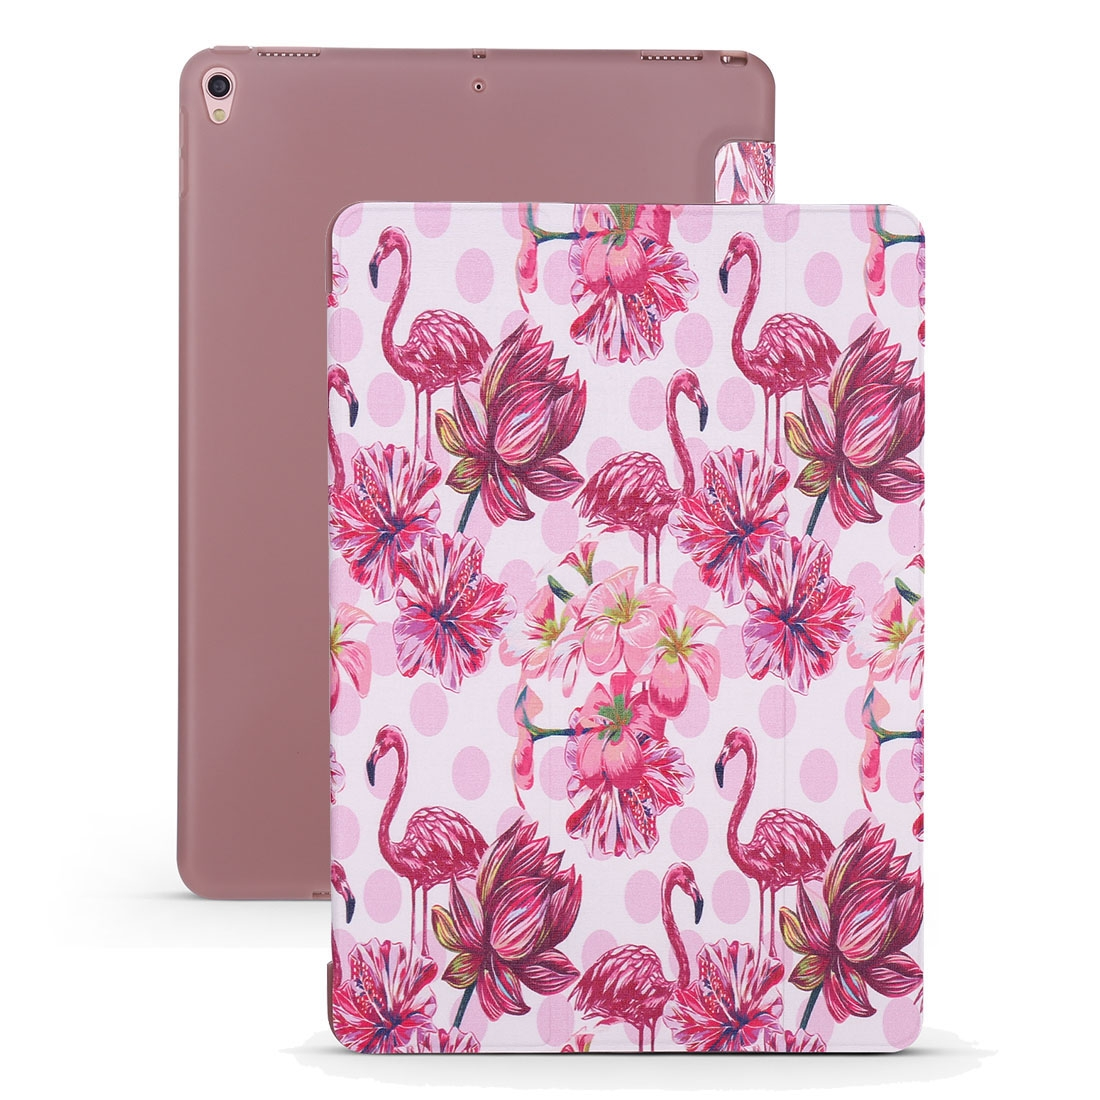 Flamingo Leather iPad Air 2 Case (2019)/ Pro 10.5 inch, with Tri-Fold Honeycomb Durable Cover